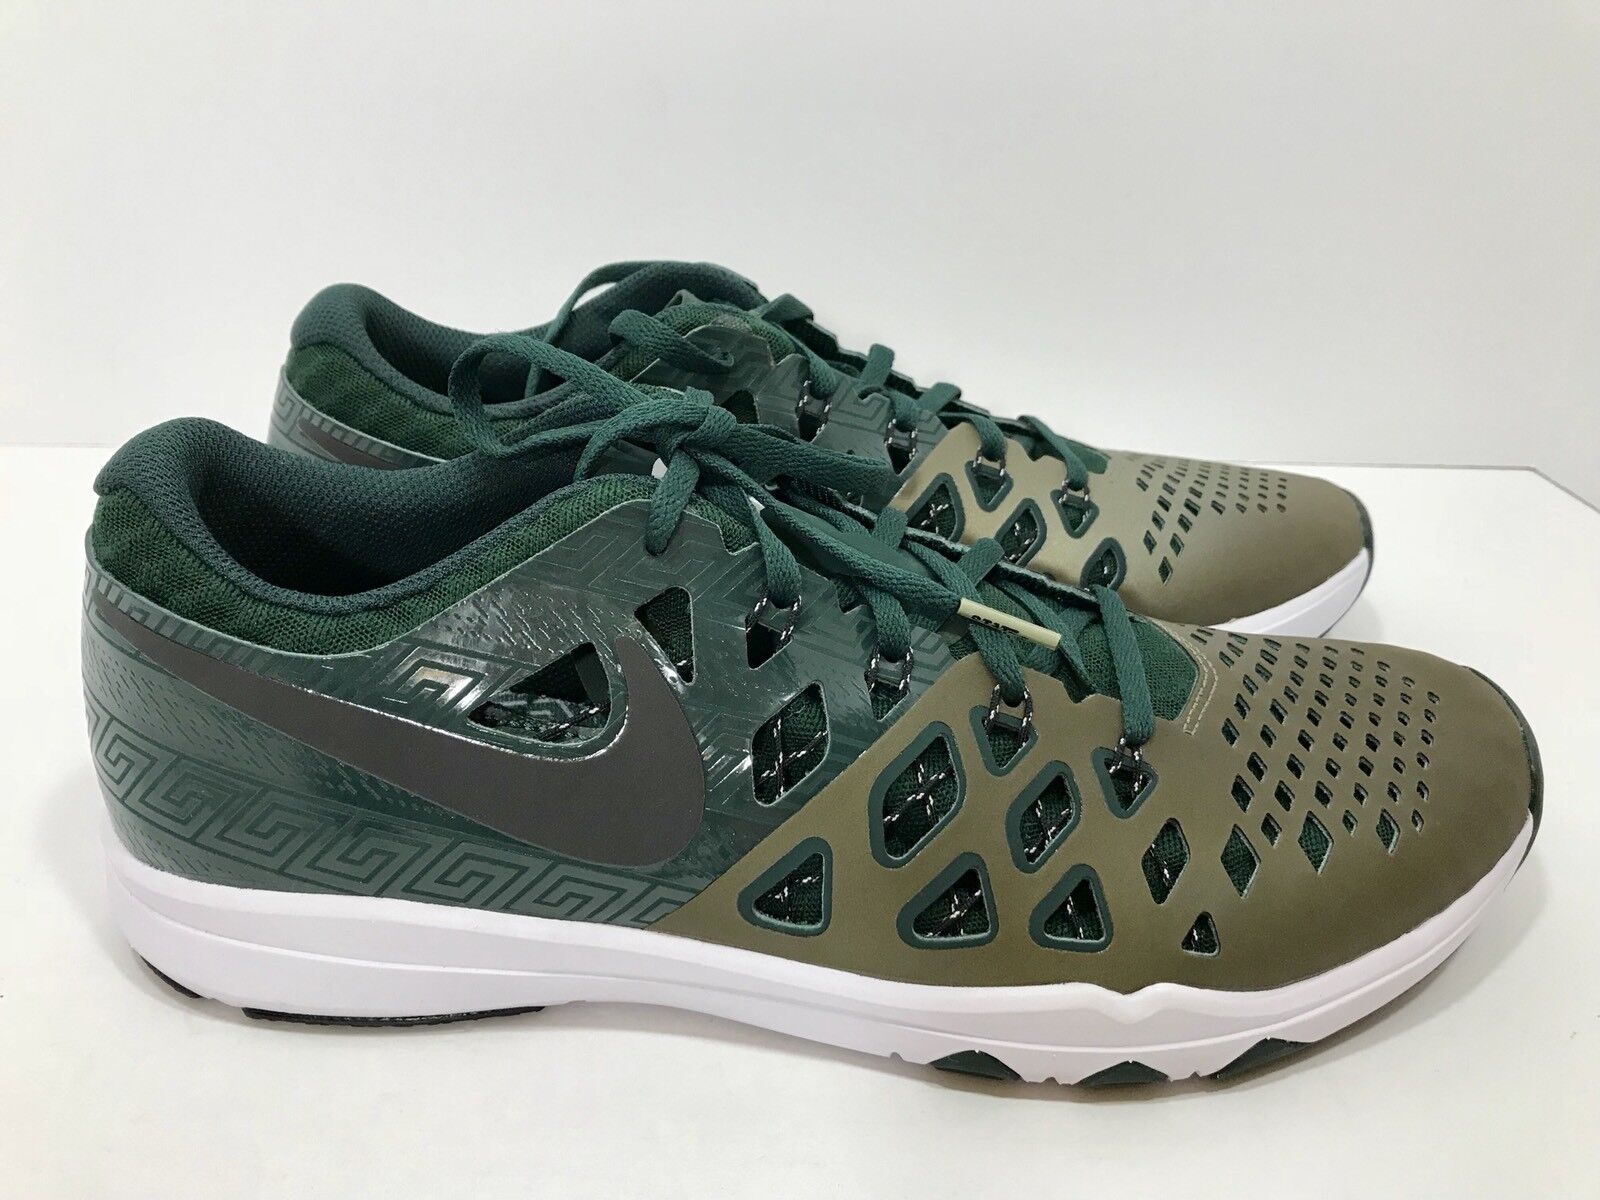 low priced 5193d 1a0a2 ... Nike Train Speed 4 Amp Michigan Michigan Michigan State Spartans Men s  Size 13 ...